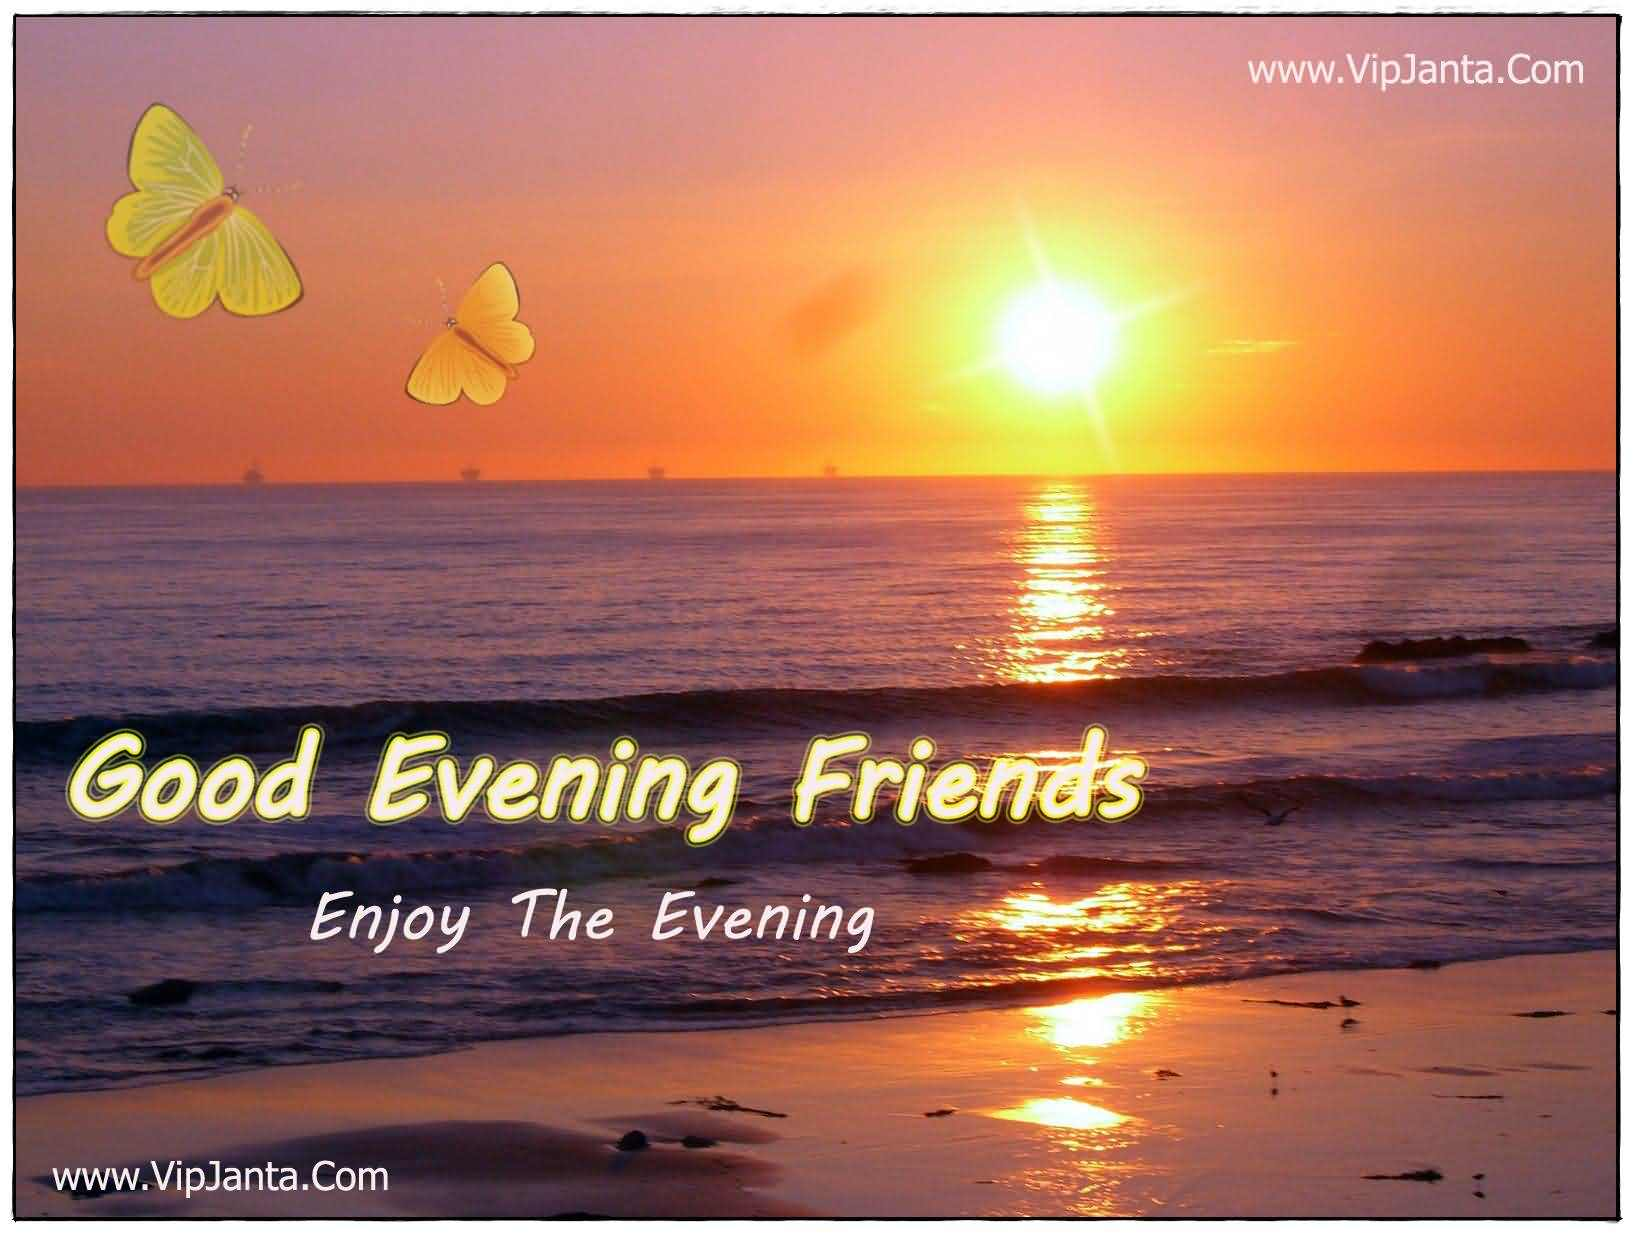 Good Evening Wishes 019